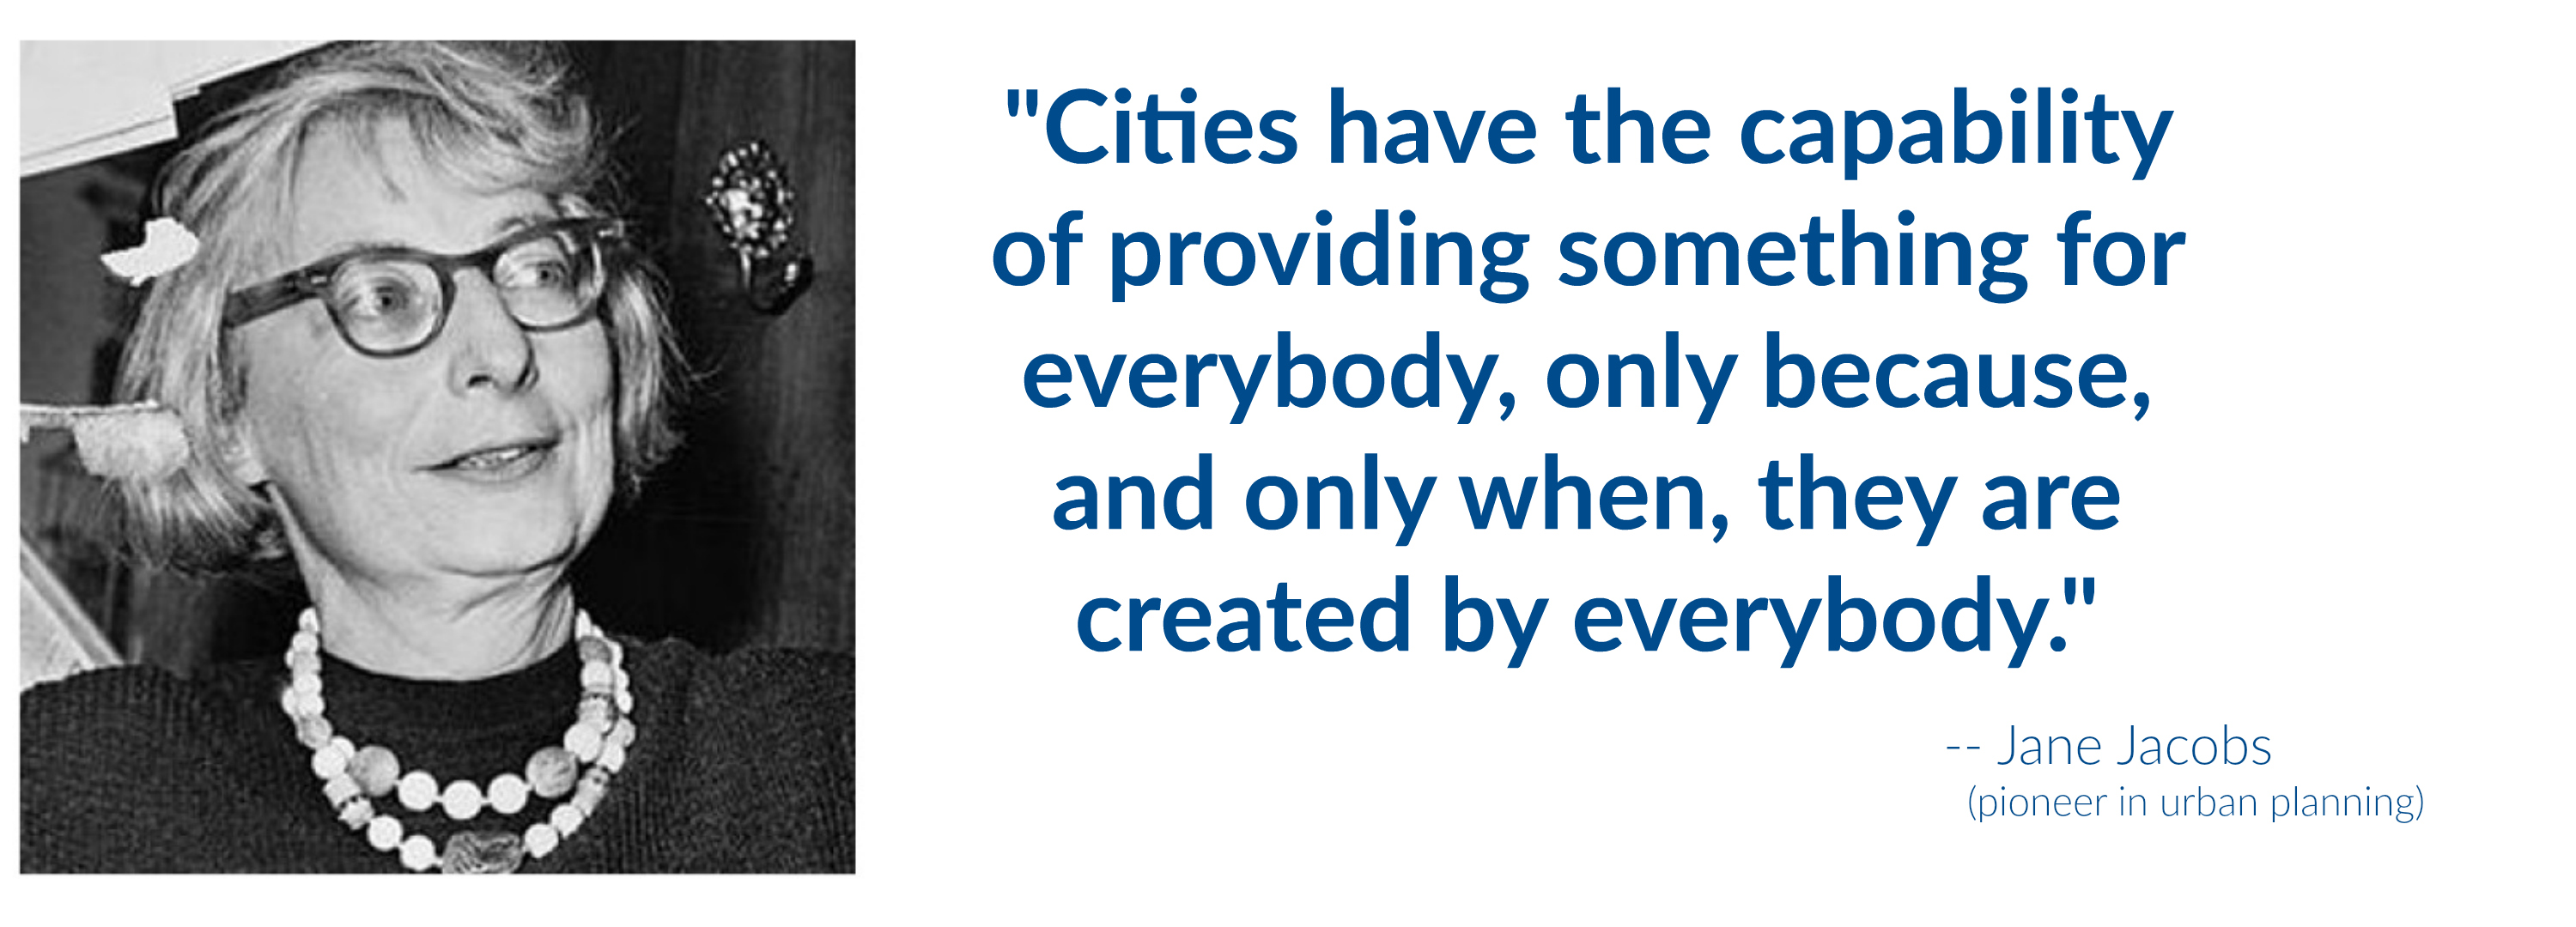 EastFallsLocal Jane Jacobs quote